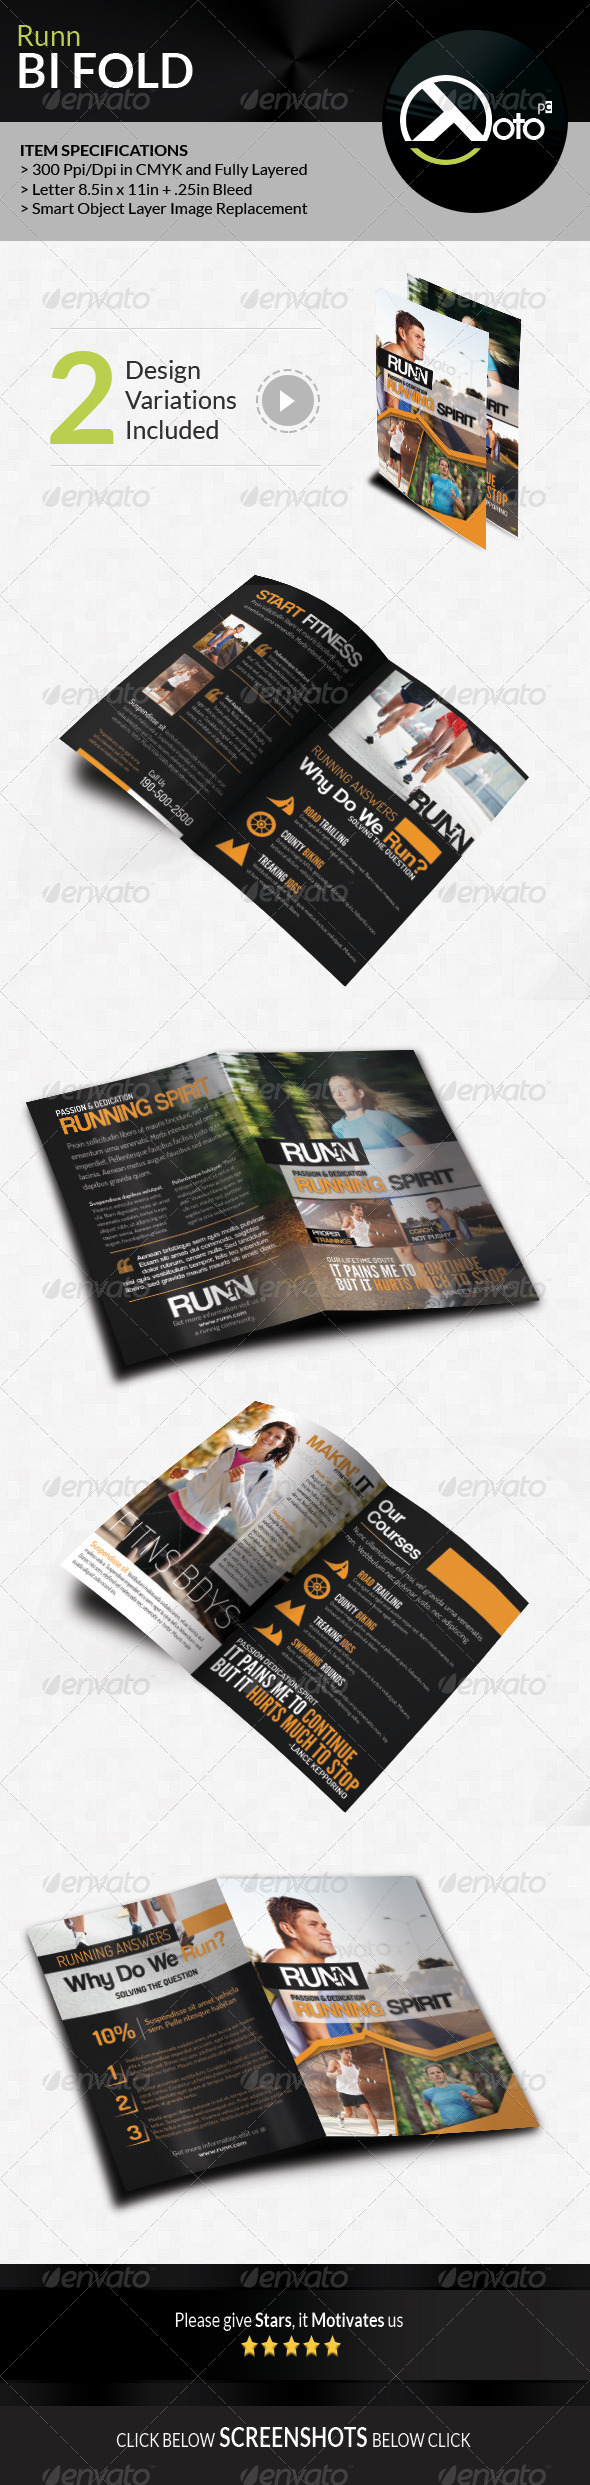 GraphicRiver Runn Marathon Running Club Fitness Bifold Brochure 8055781